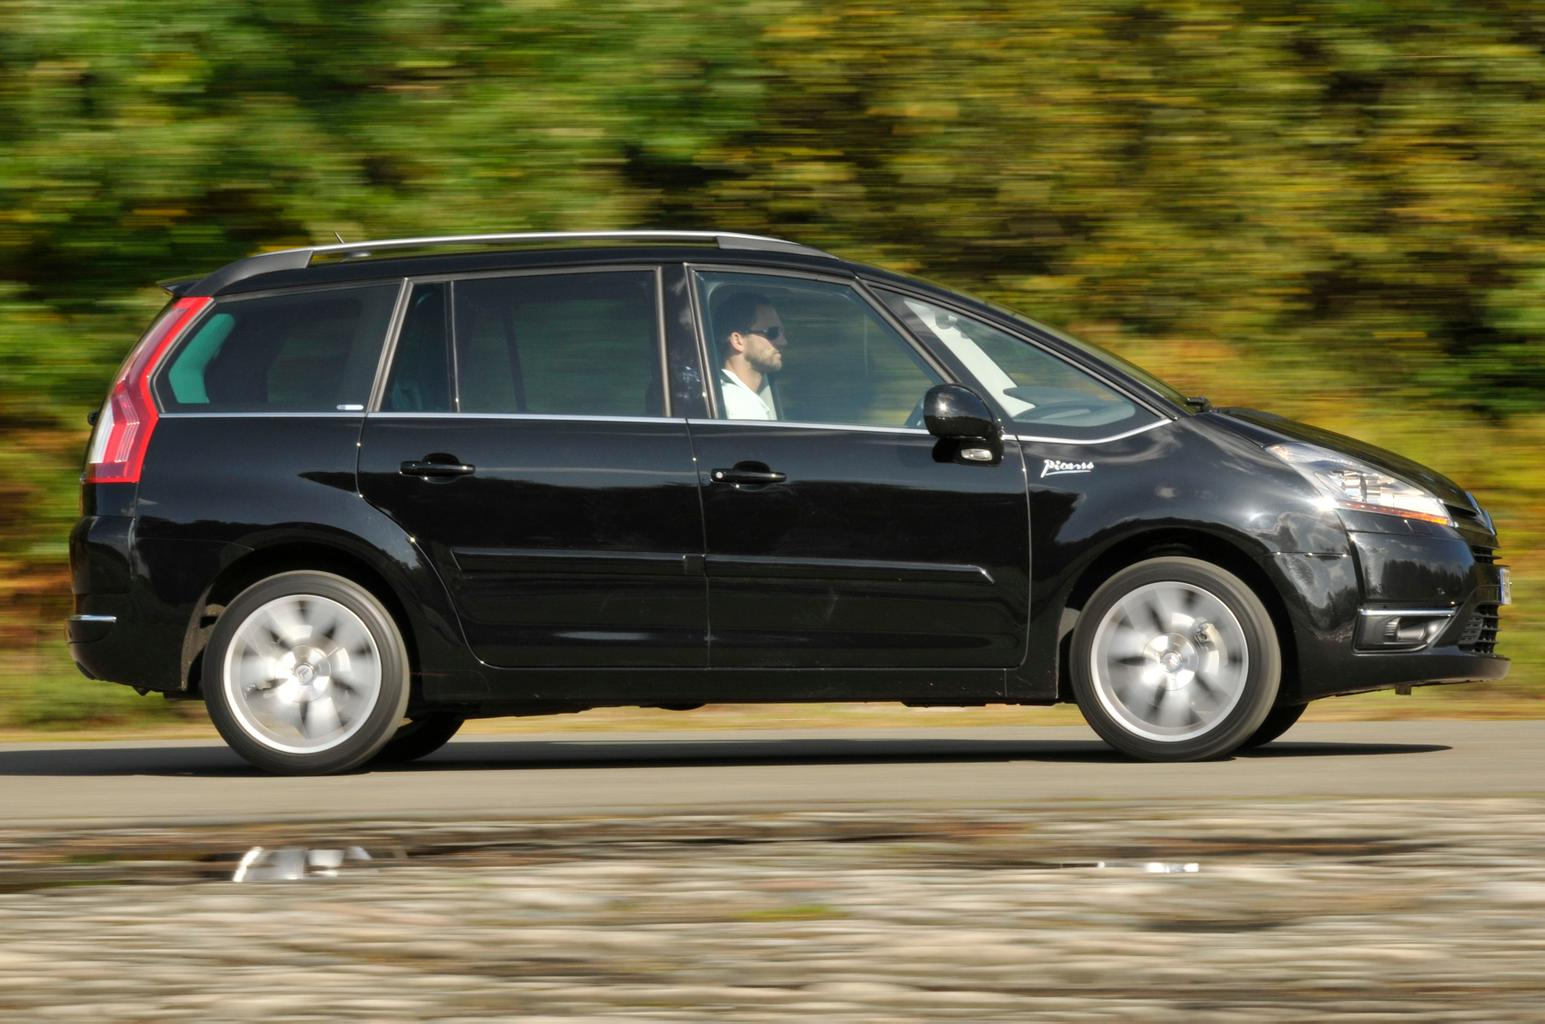 Top 10 used MPVS for less than £5000 (and the ones to avoid)